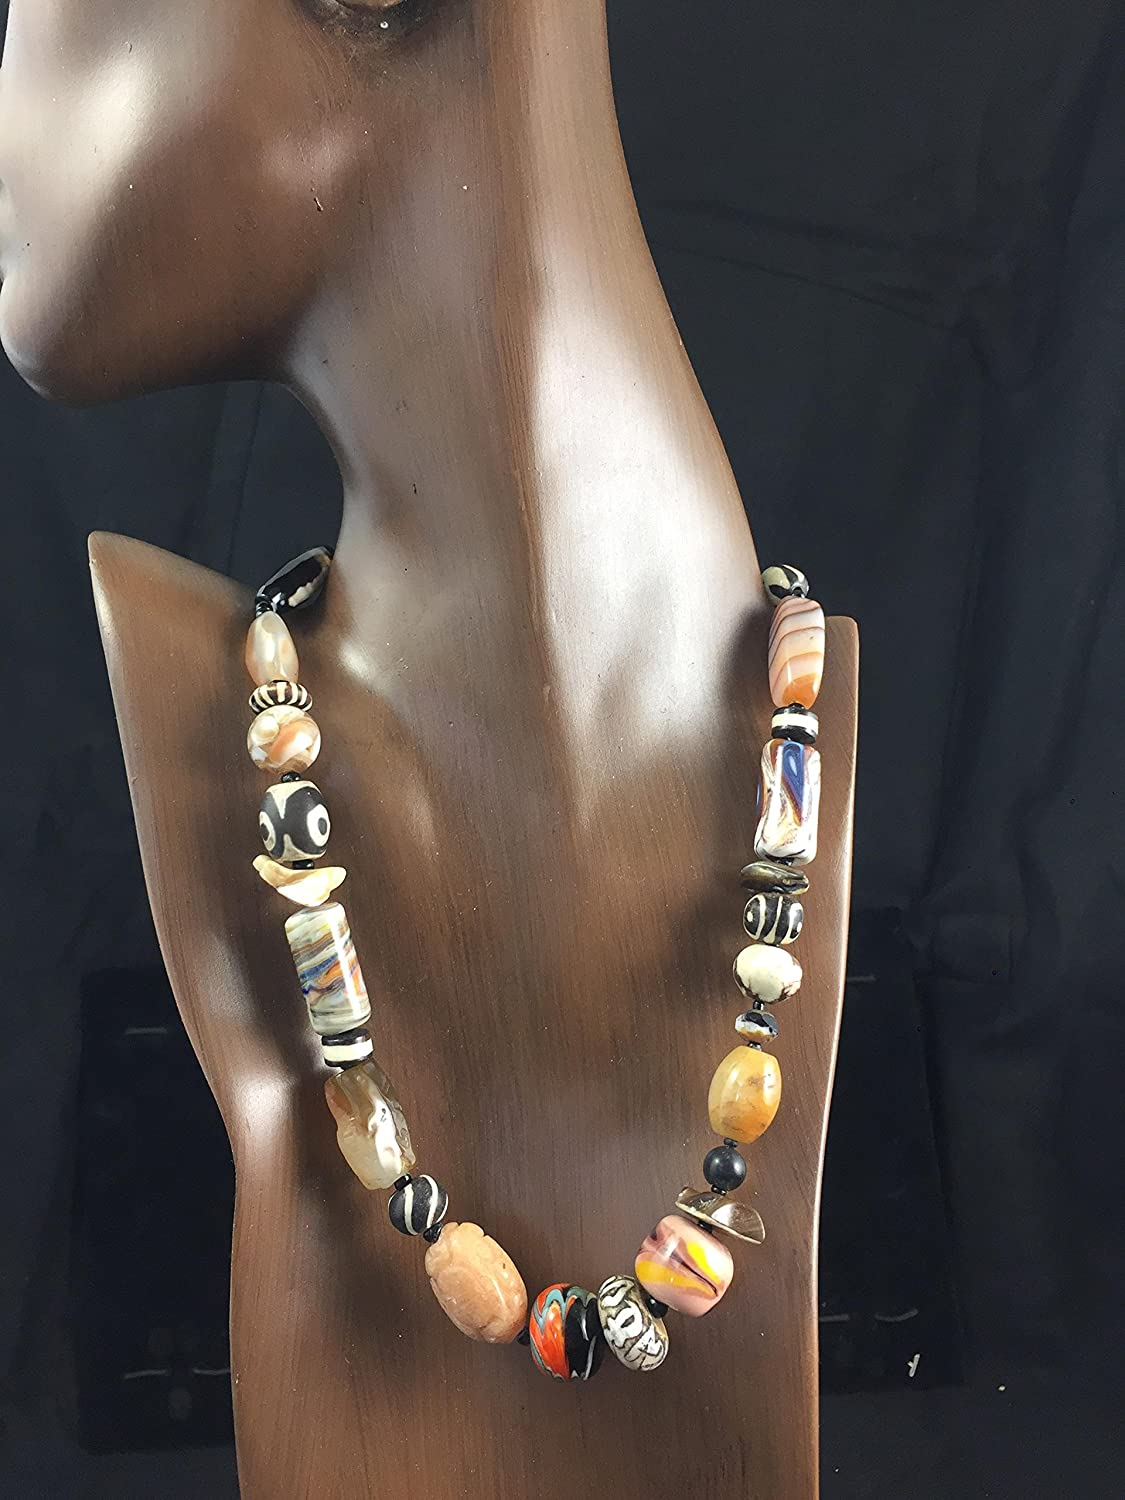 Tibetan Resin Beads Moroccan Amber Gift for Her 46cm Ethnic Mix Bead Necklace African and Tibetan Bead Necklace Ghana Glass Beads